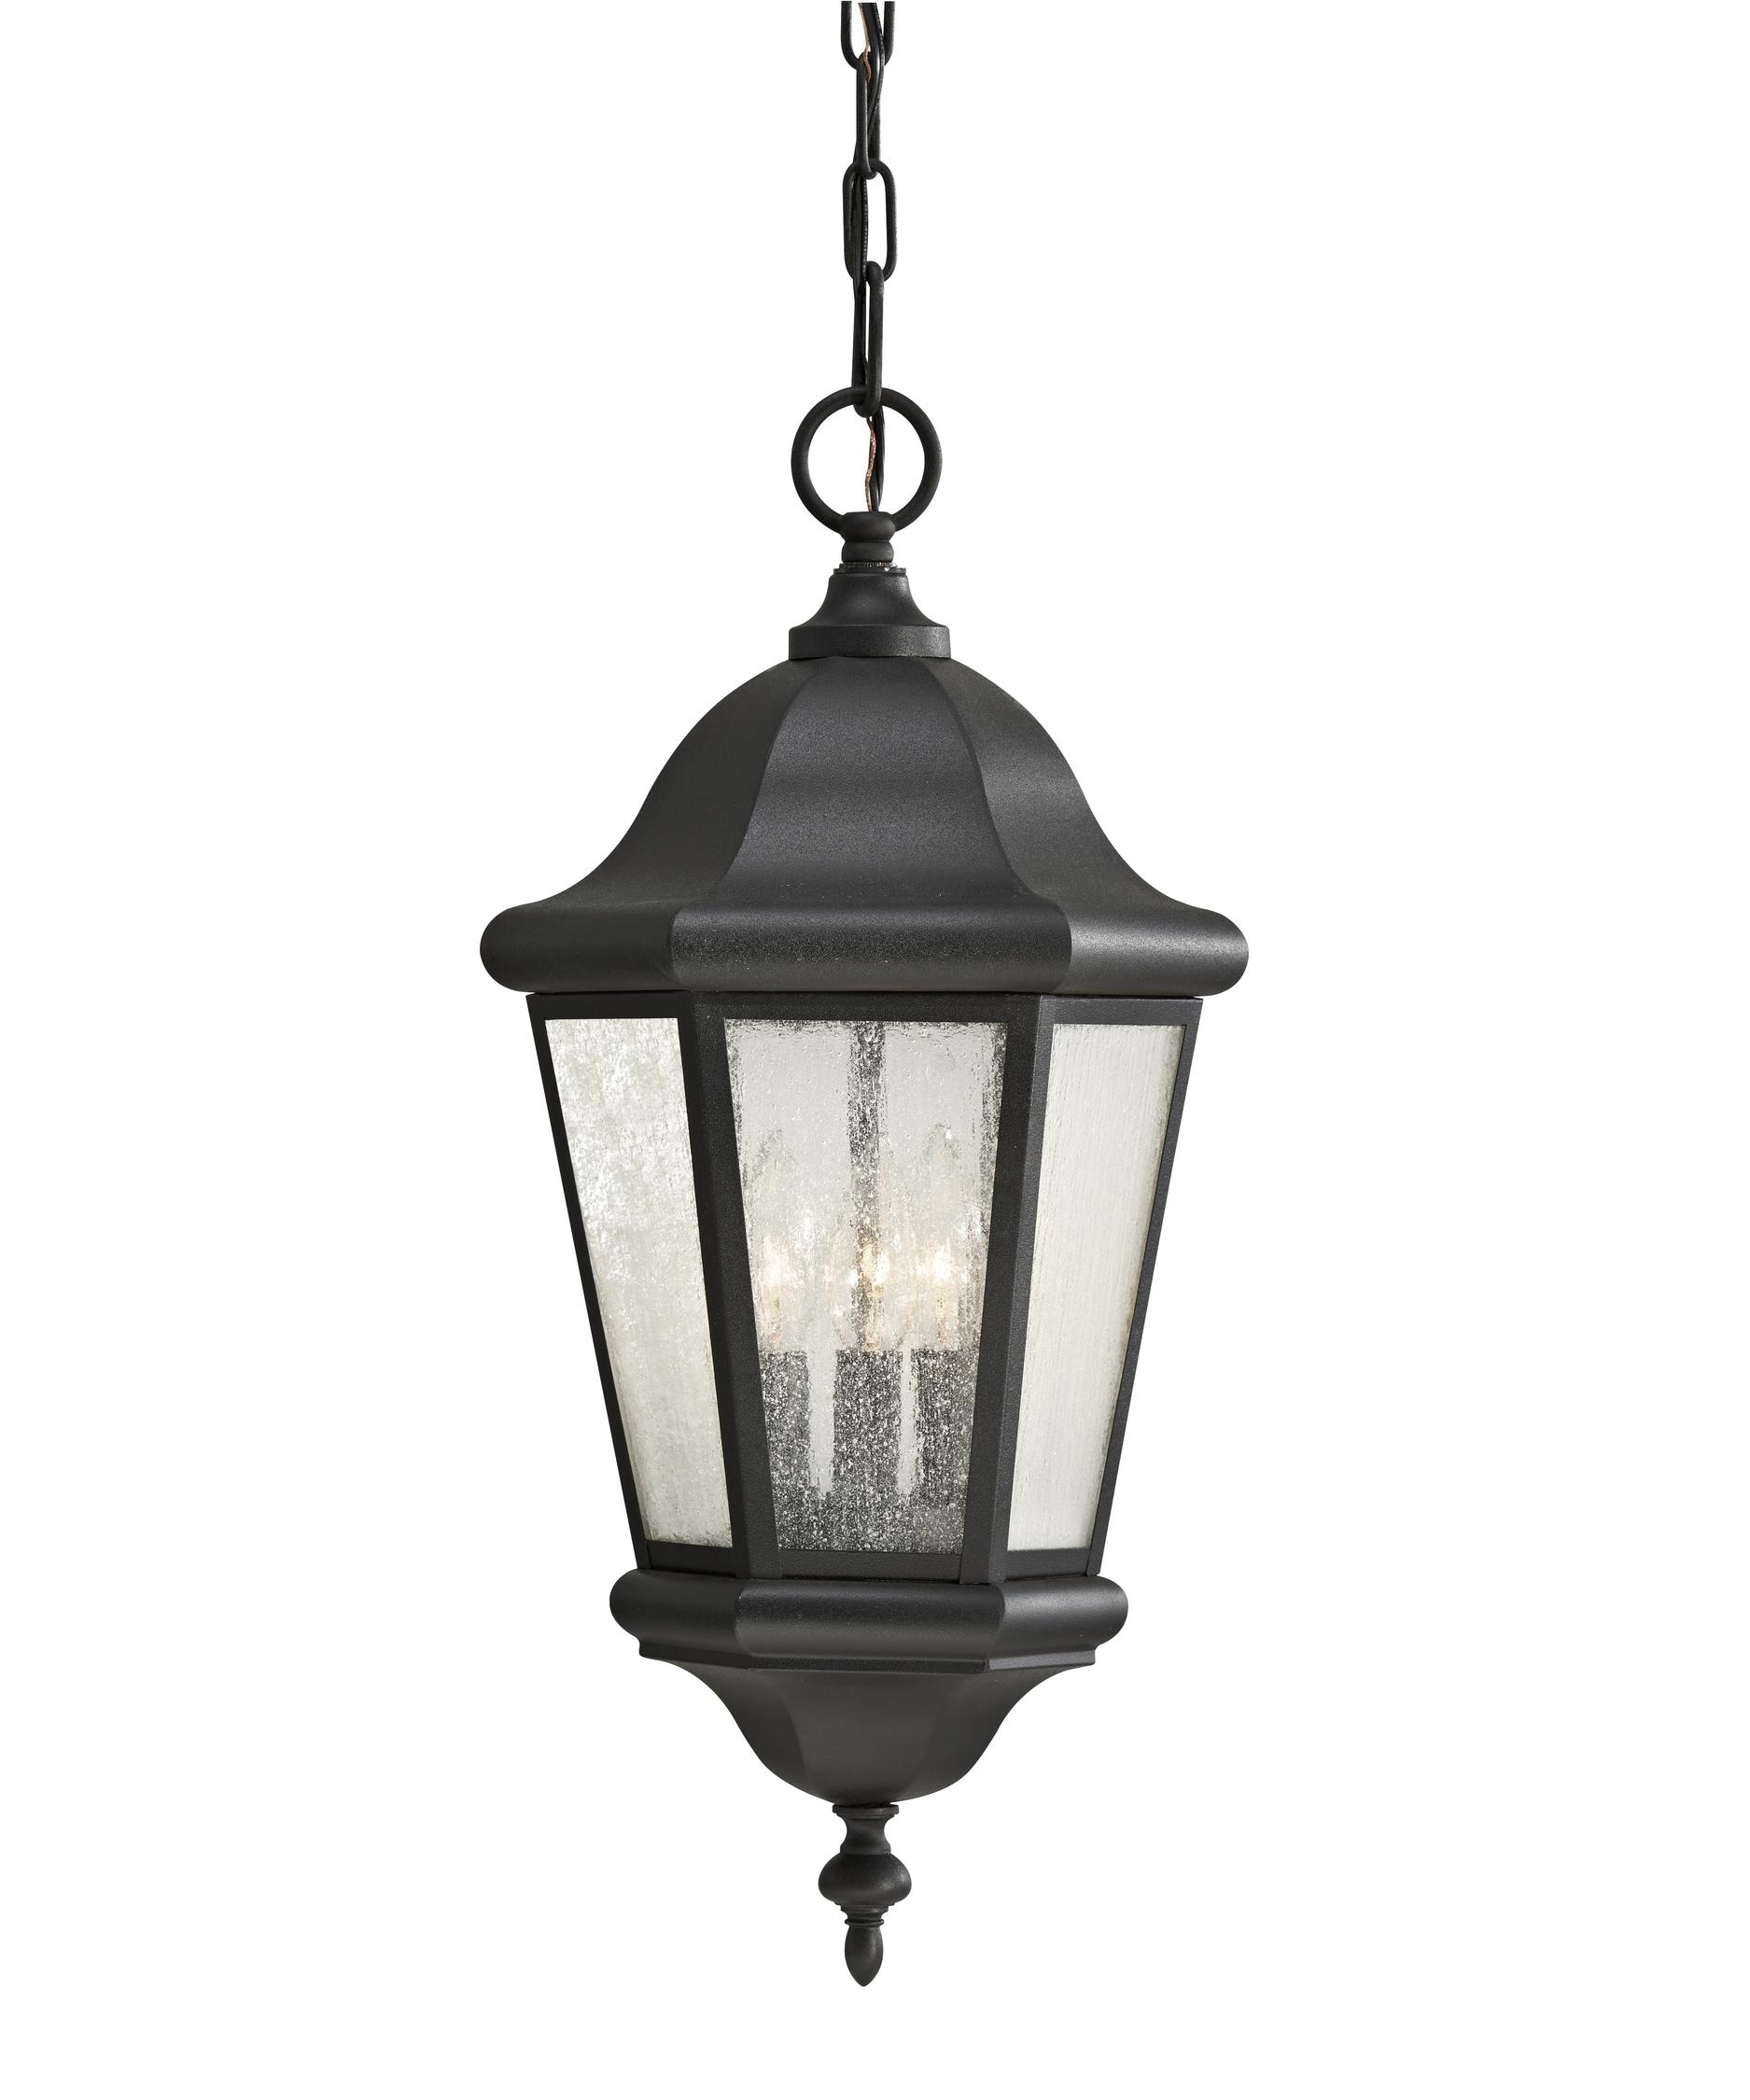 Famous Outdoor : Common 4 Light Outdoor Hanging Pendant Lantern Current Intended For Traditional Outdoor Hanging Lights (View 9 of 20)